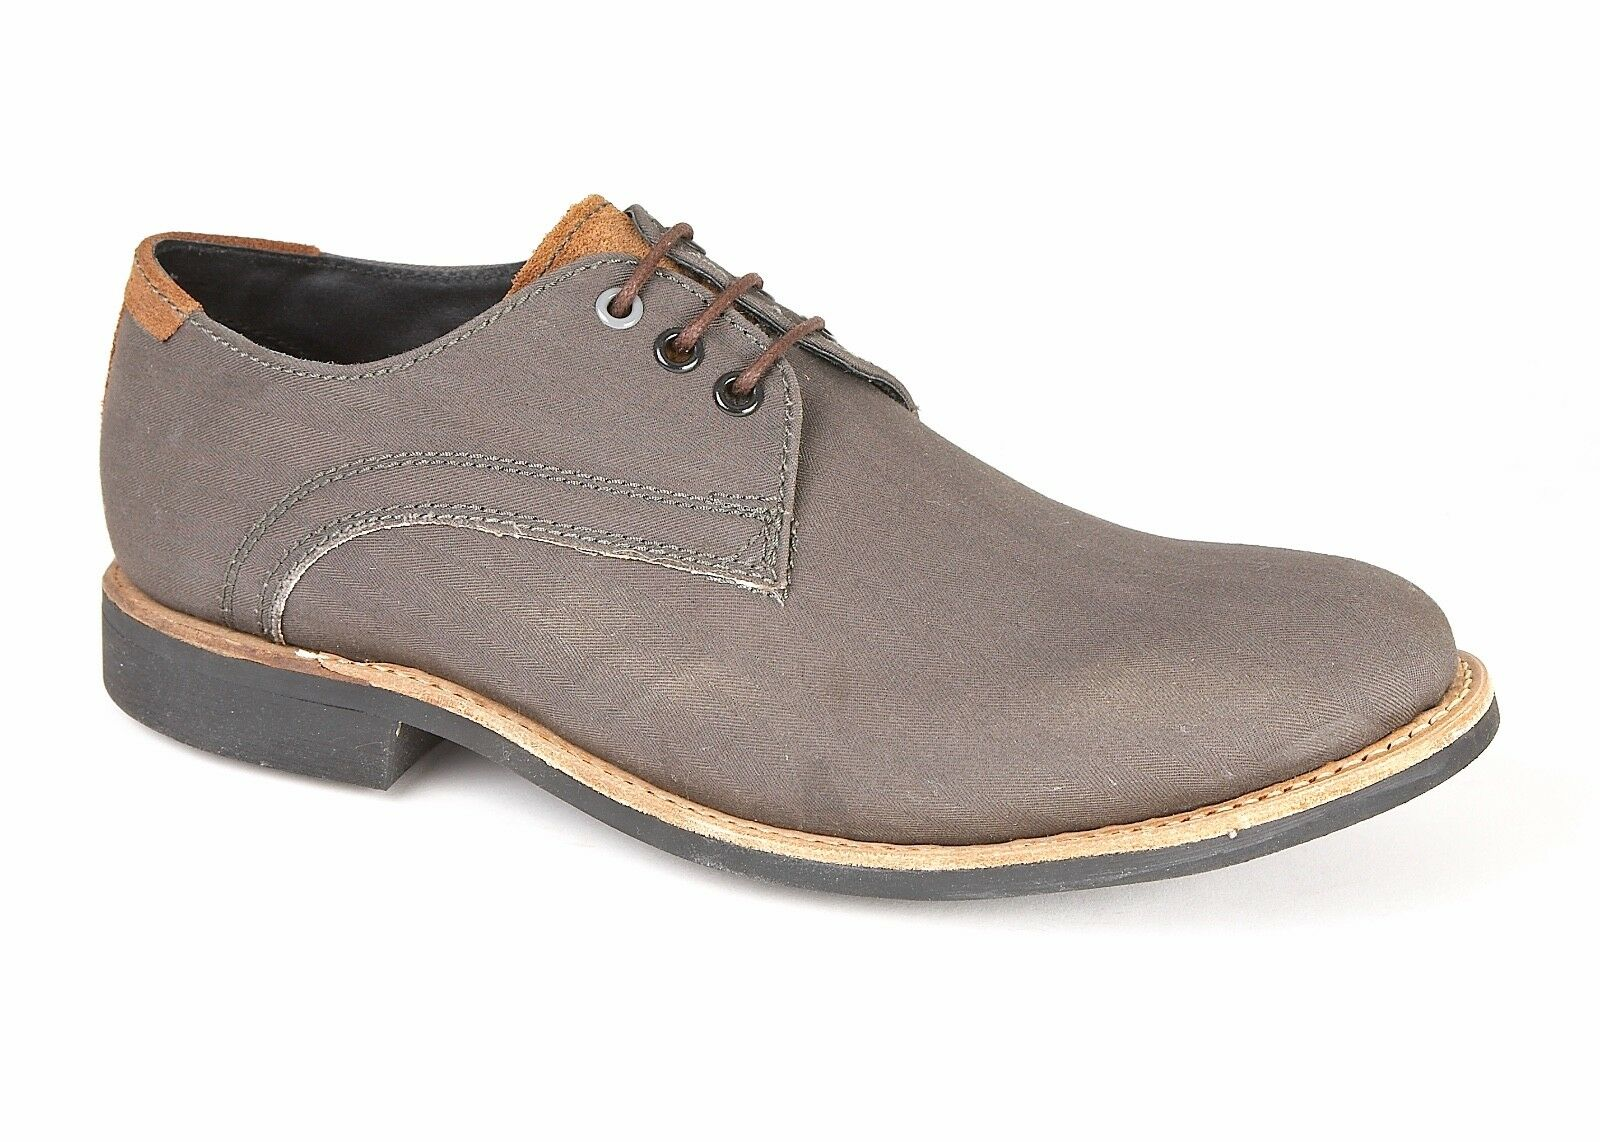 Lambretta Mens shoes Canvas Grey Brown Goodyear Welted Rubber Sole Round Toe